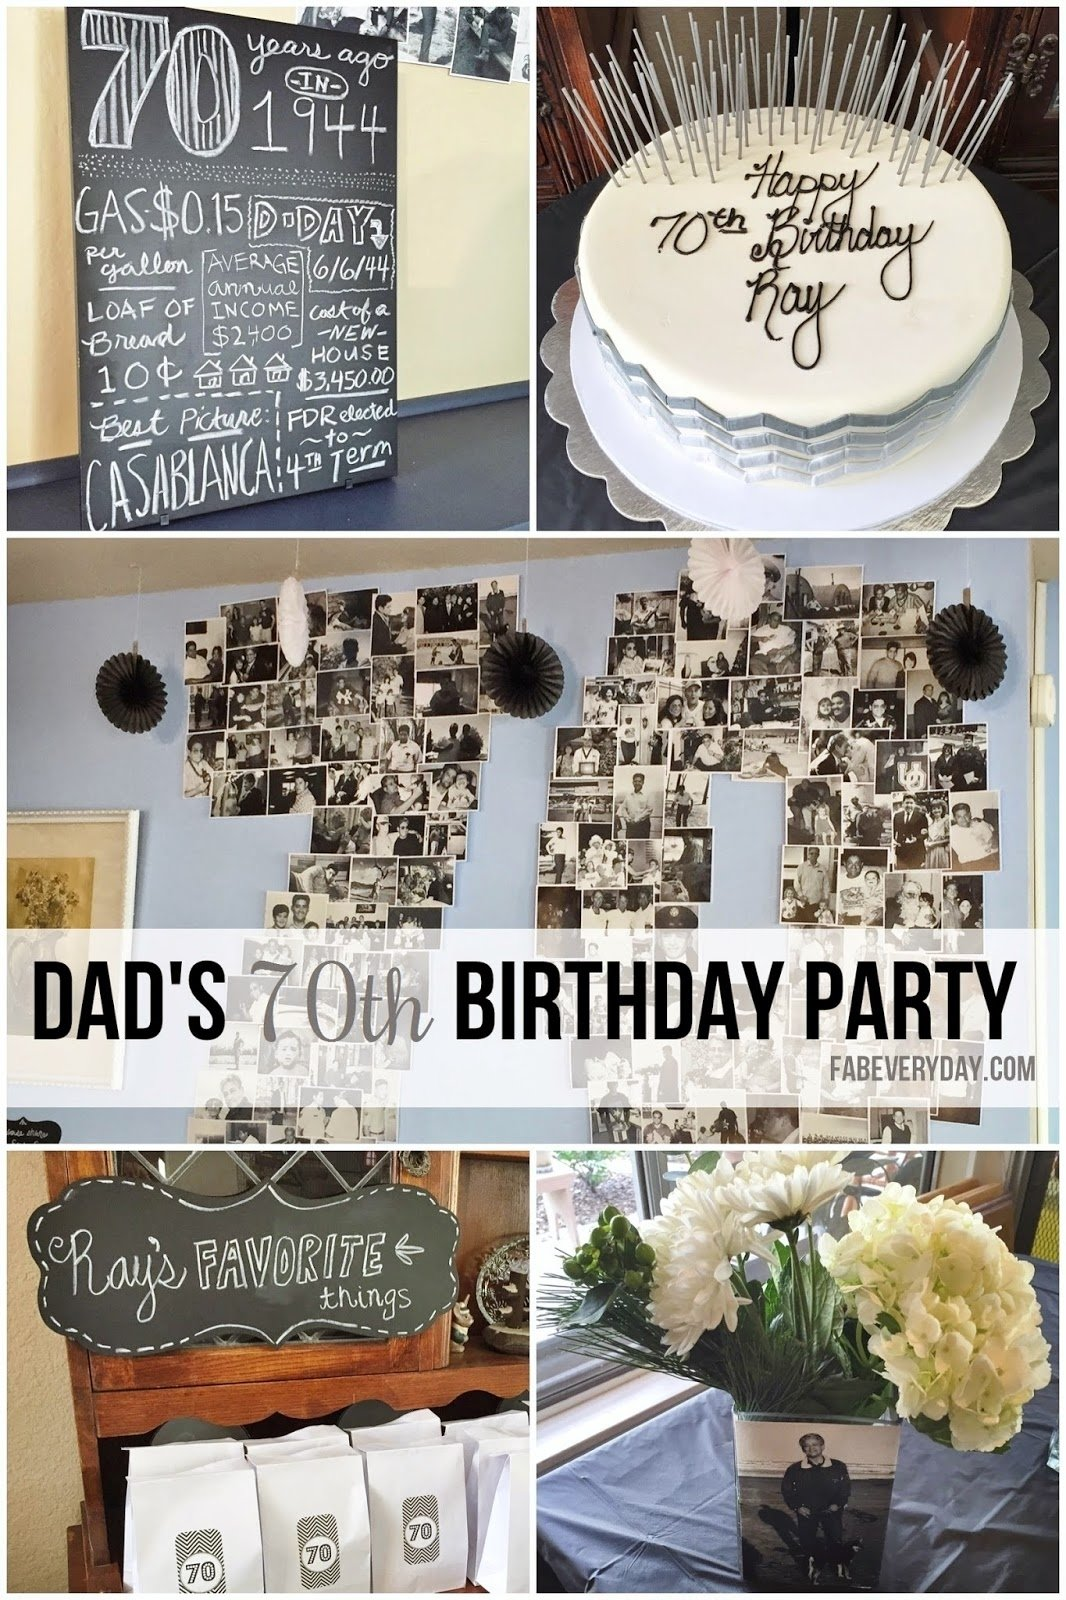 10 Most Popular 70Th Birthday Gift Ideas For Dad Fab Everyday Because Life Should Be